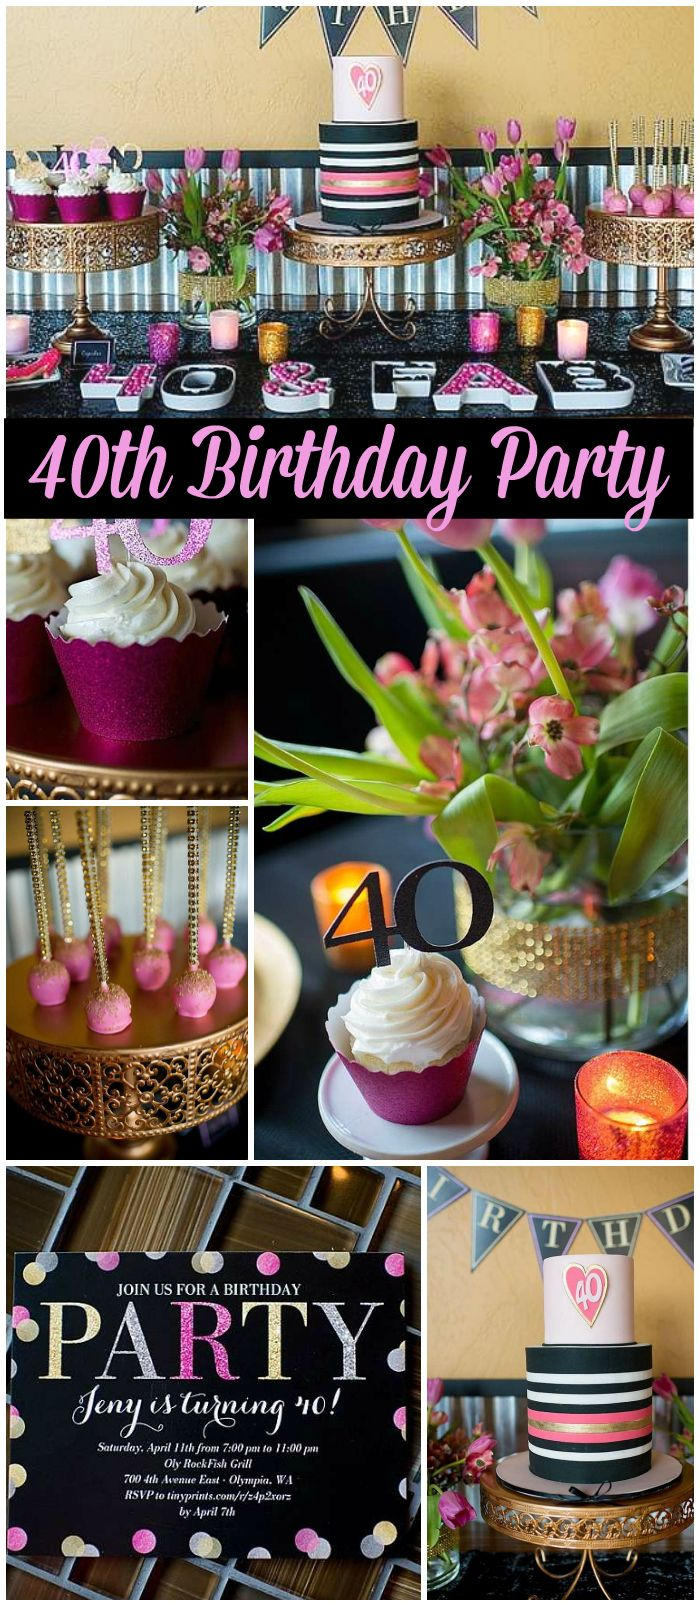 Check out this glamorous 40th birthday party with stylish decor and gorgeous treats! See more party ideas at CatchMyParty.com!